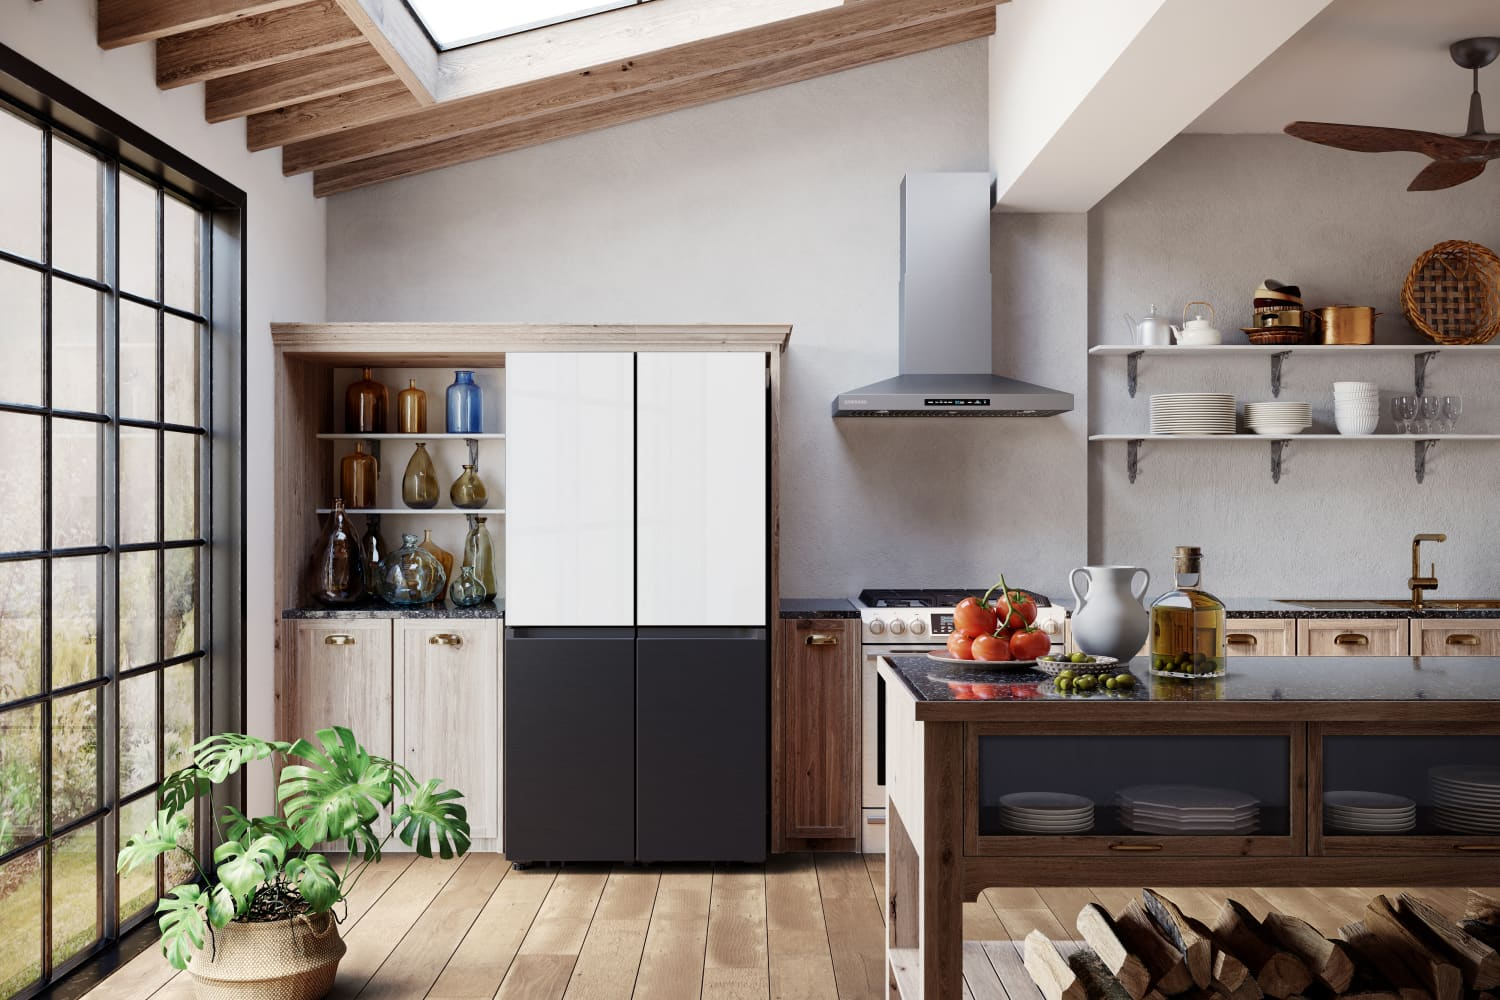 Samsung's New Refrigerator Can Be Configured Over 4,000 Ways